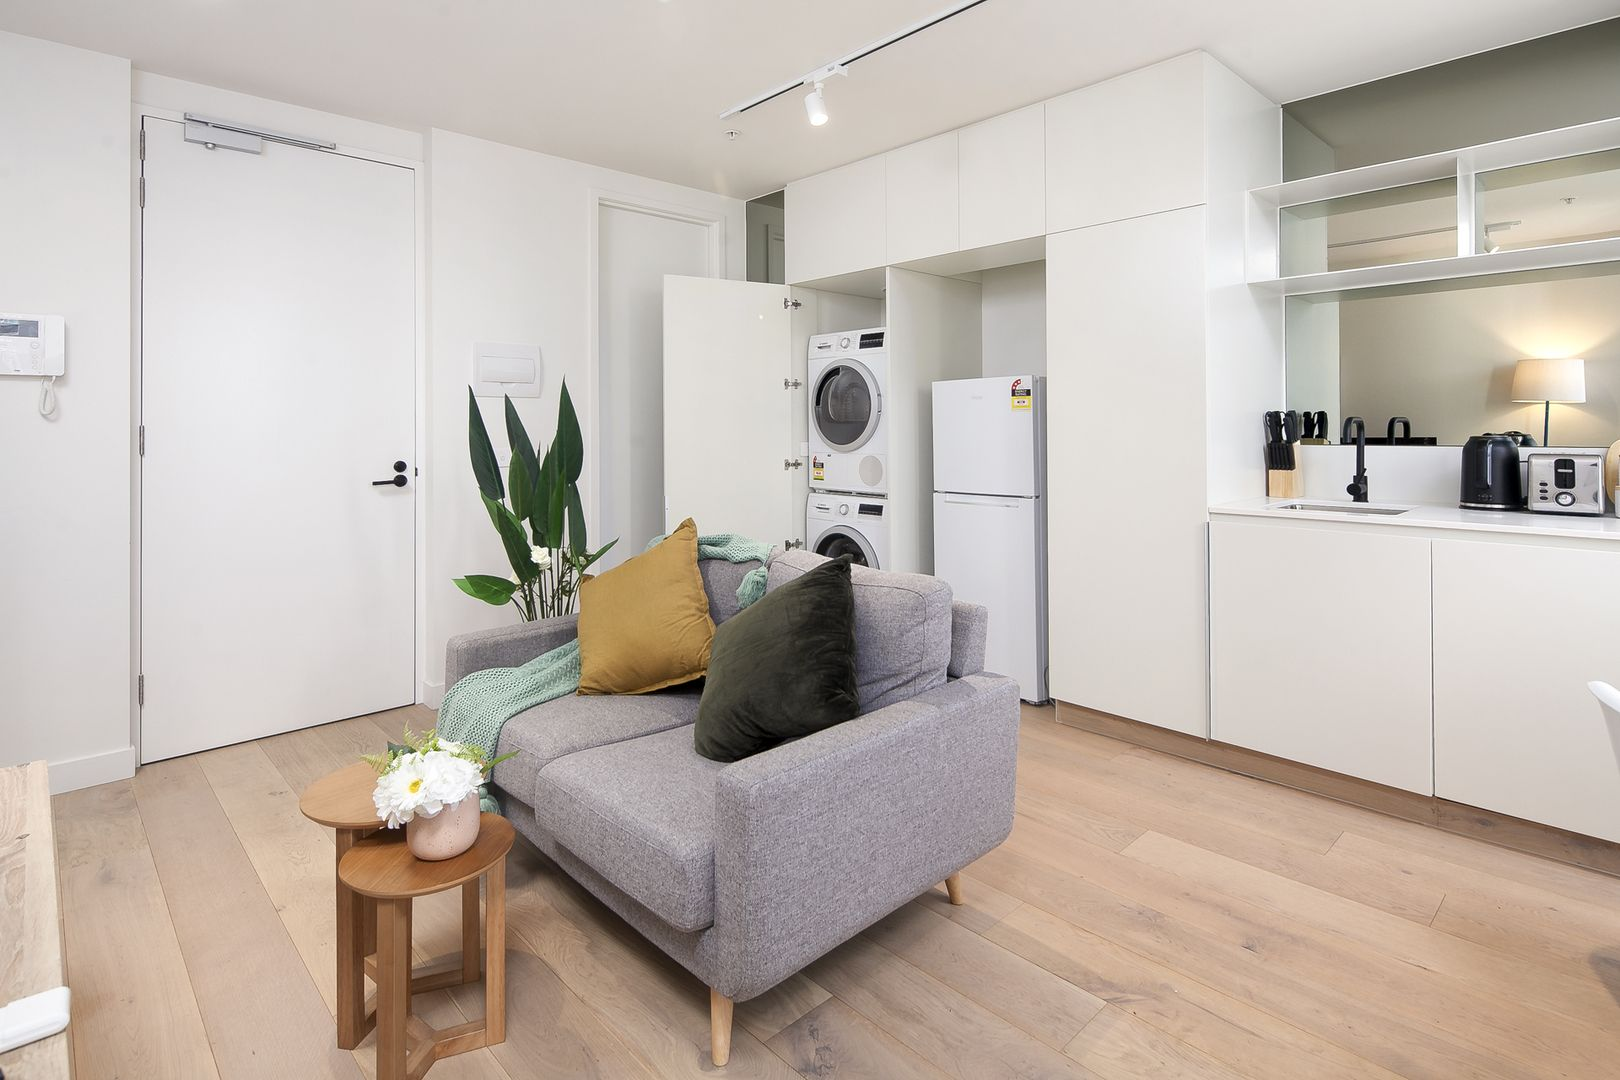 309/75-77 Palmerston Crescent,, South Melbourne VIC 3205, Image 2